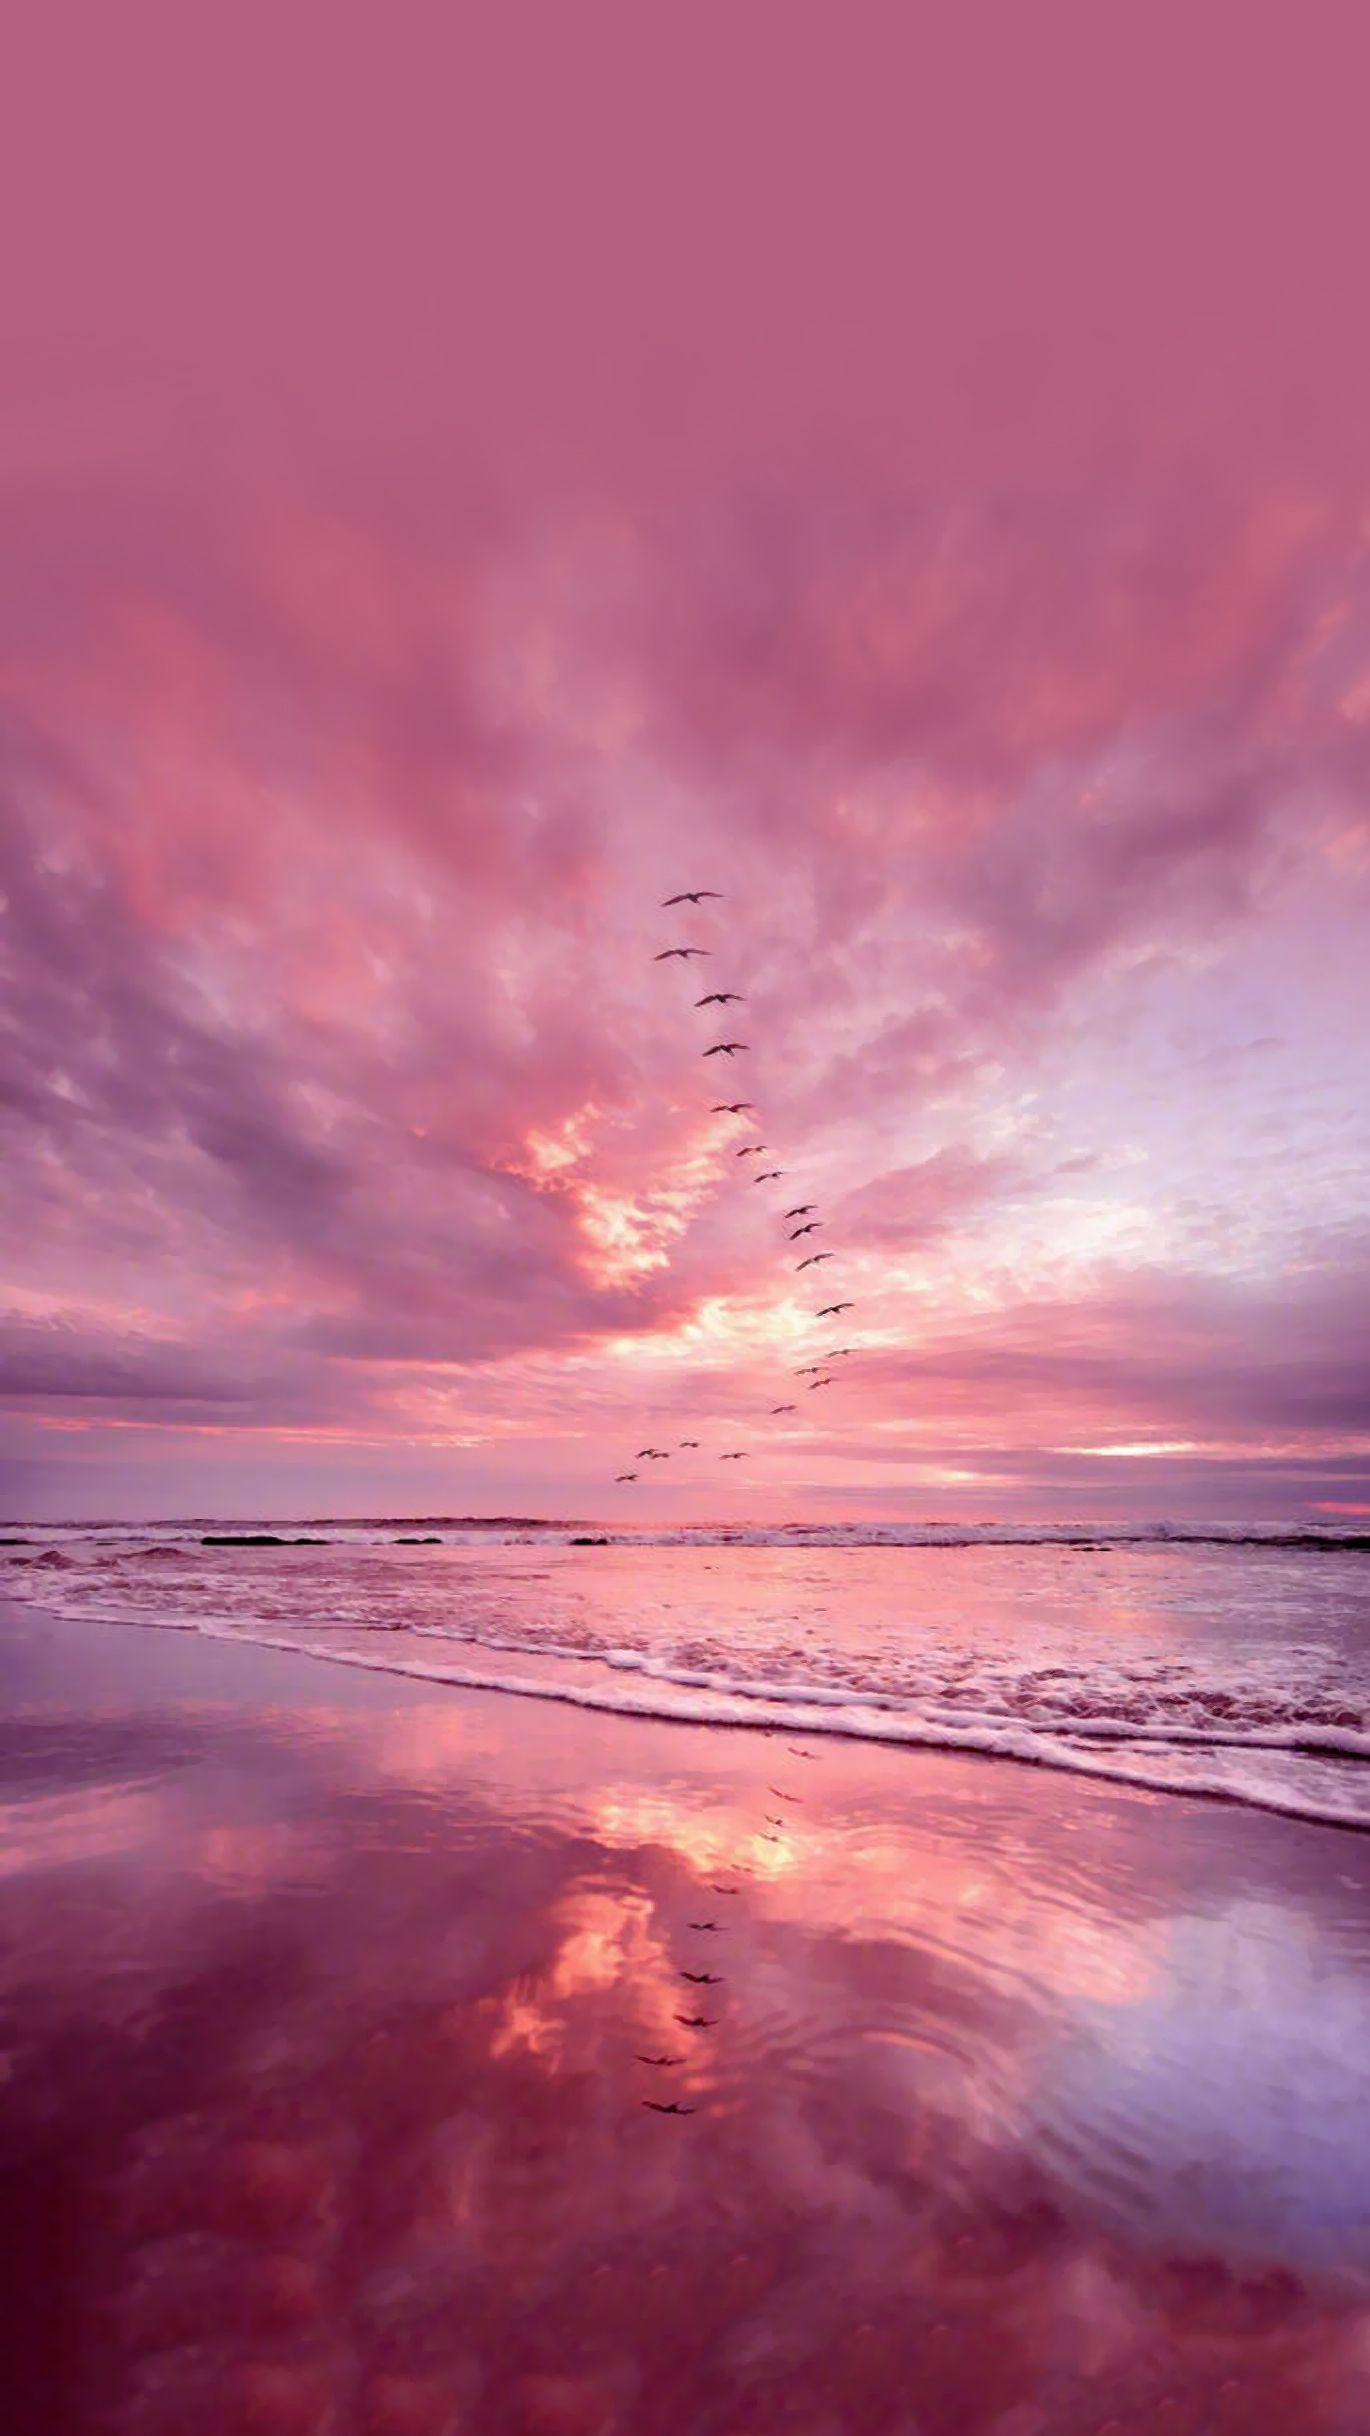 Pink sea & bird background wallpaper #cutewallpaperbackgrounds